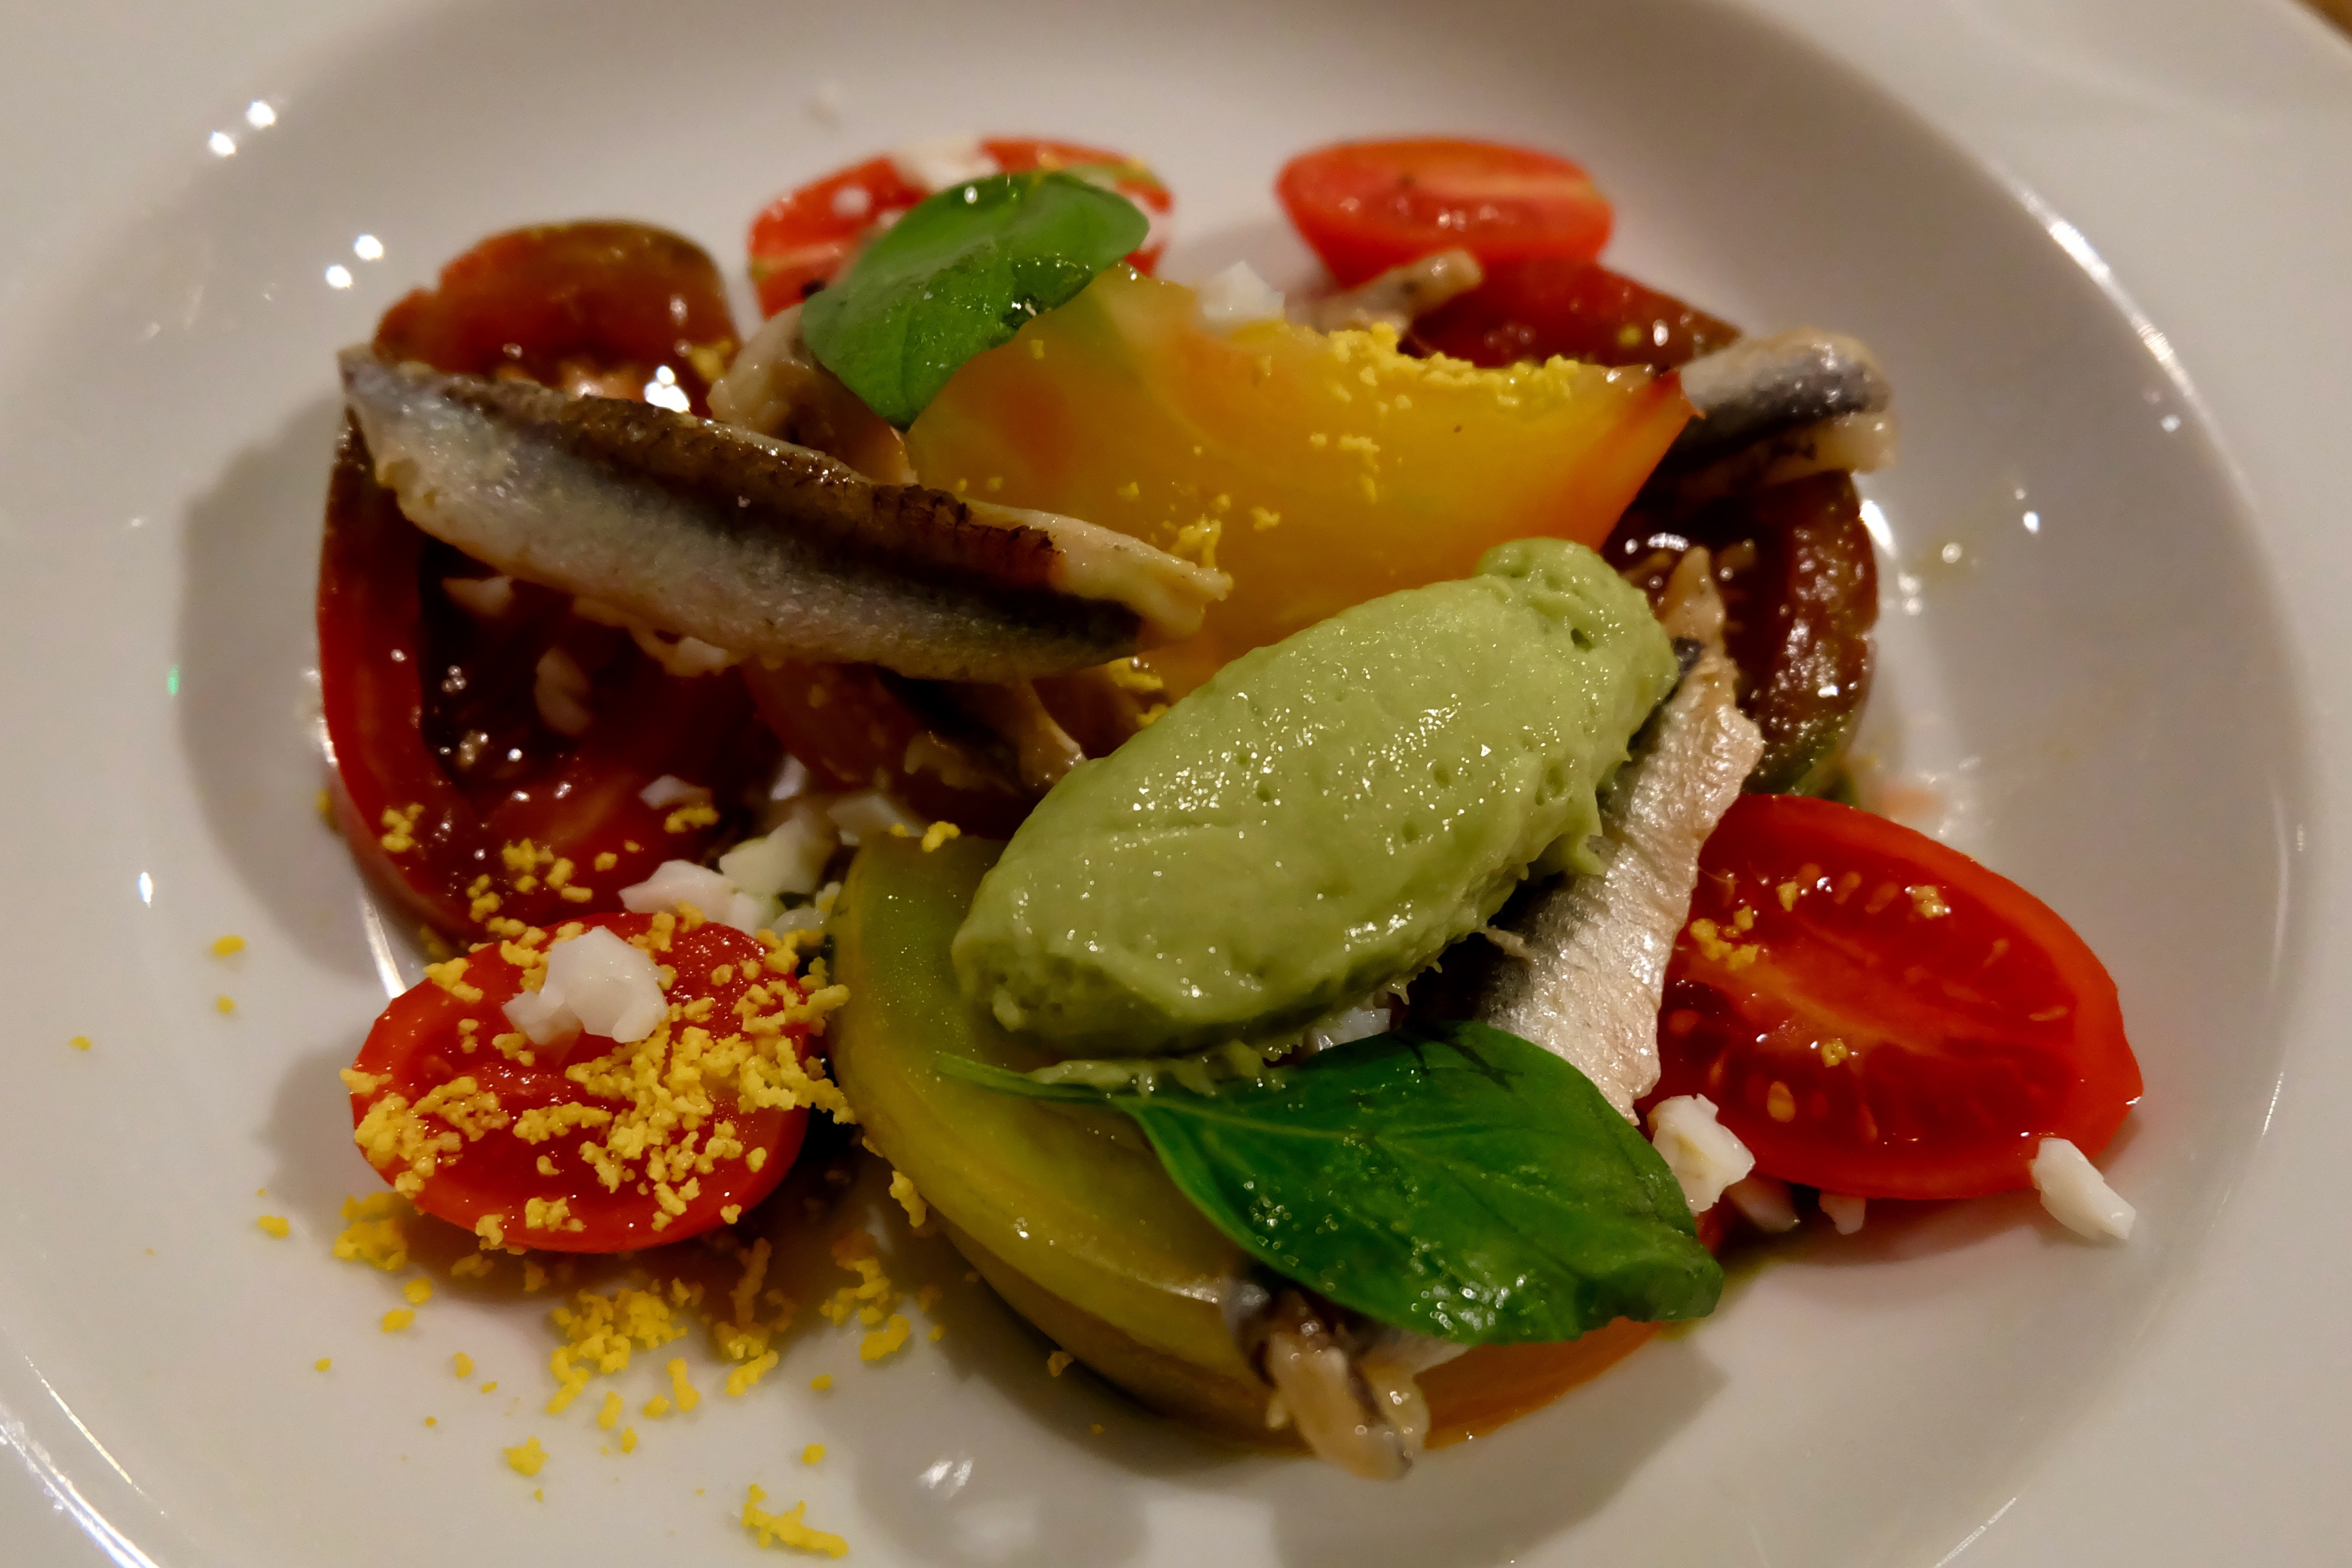 Tomatoes with basil sorbet and anchovies at Spring restaurant in Paris